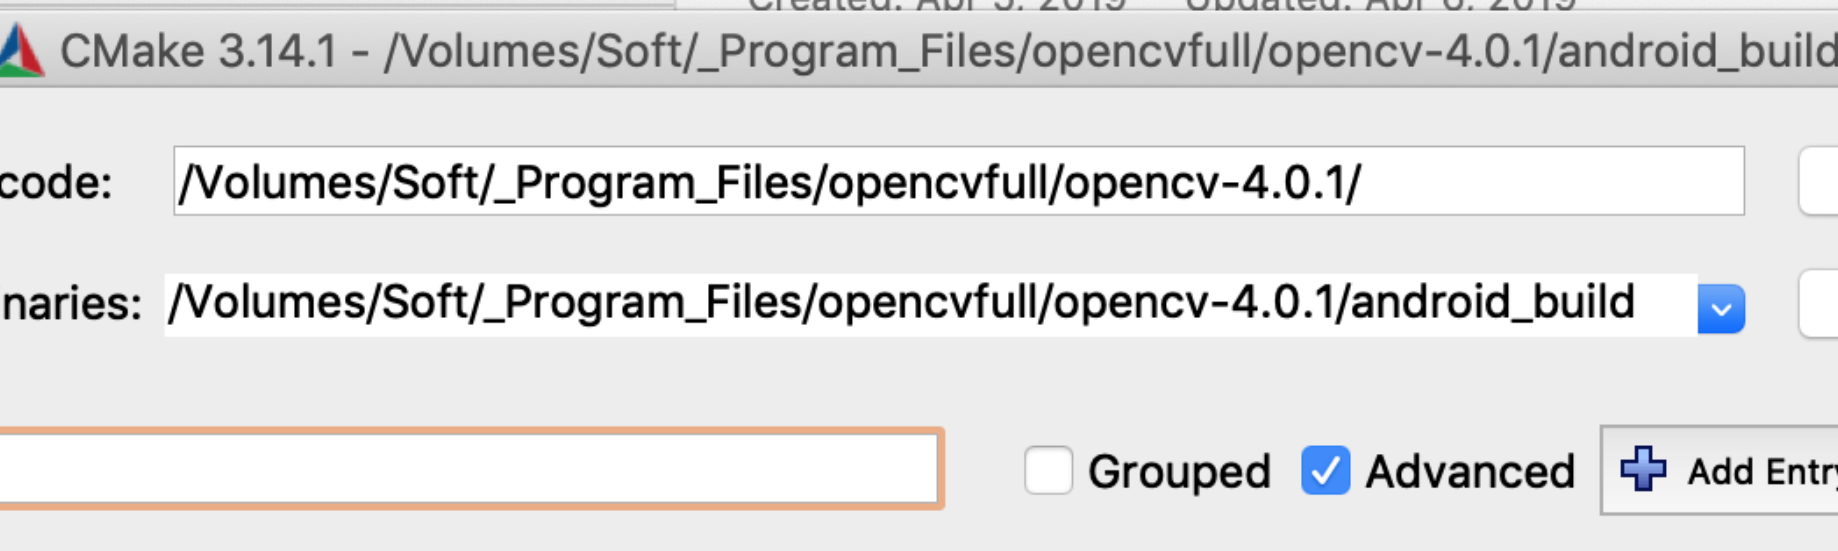 Build opencv4 0 1 & opencv_contrib for Android on macOS